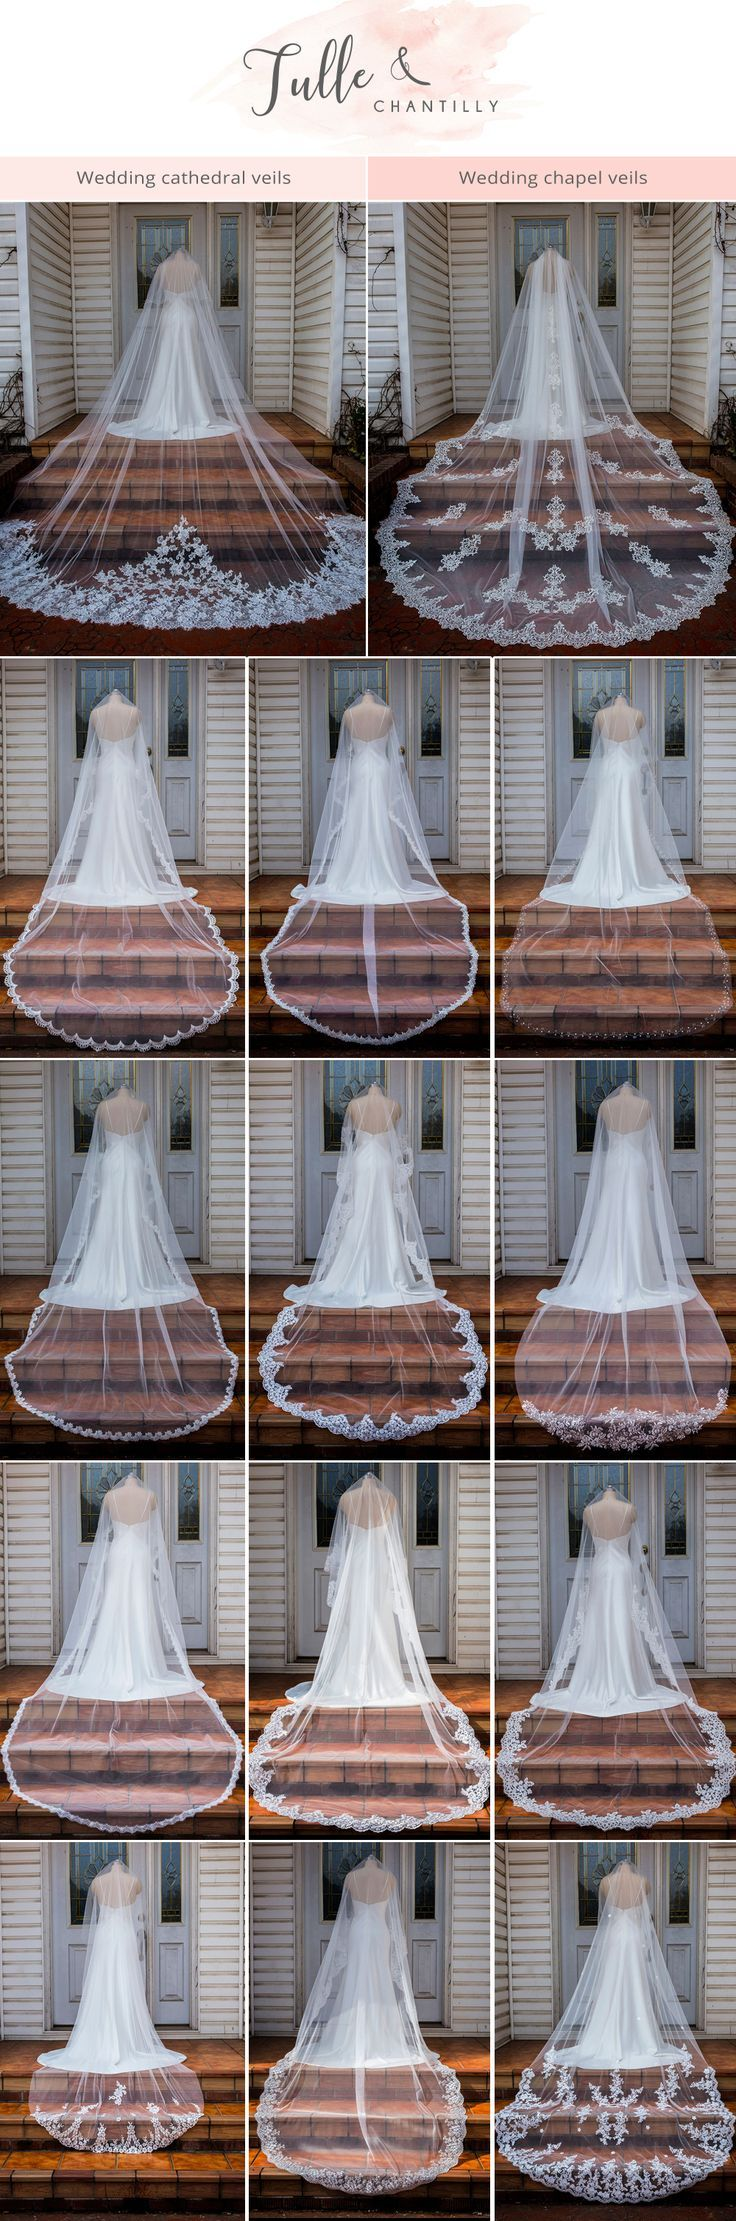 Cathedral wedding dress  Veils  Spanish veil Cathedral wedding veils and Cathedrals